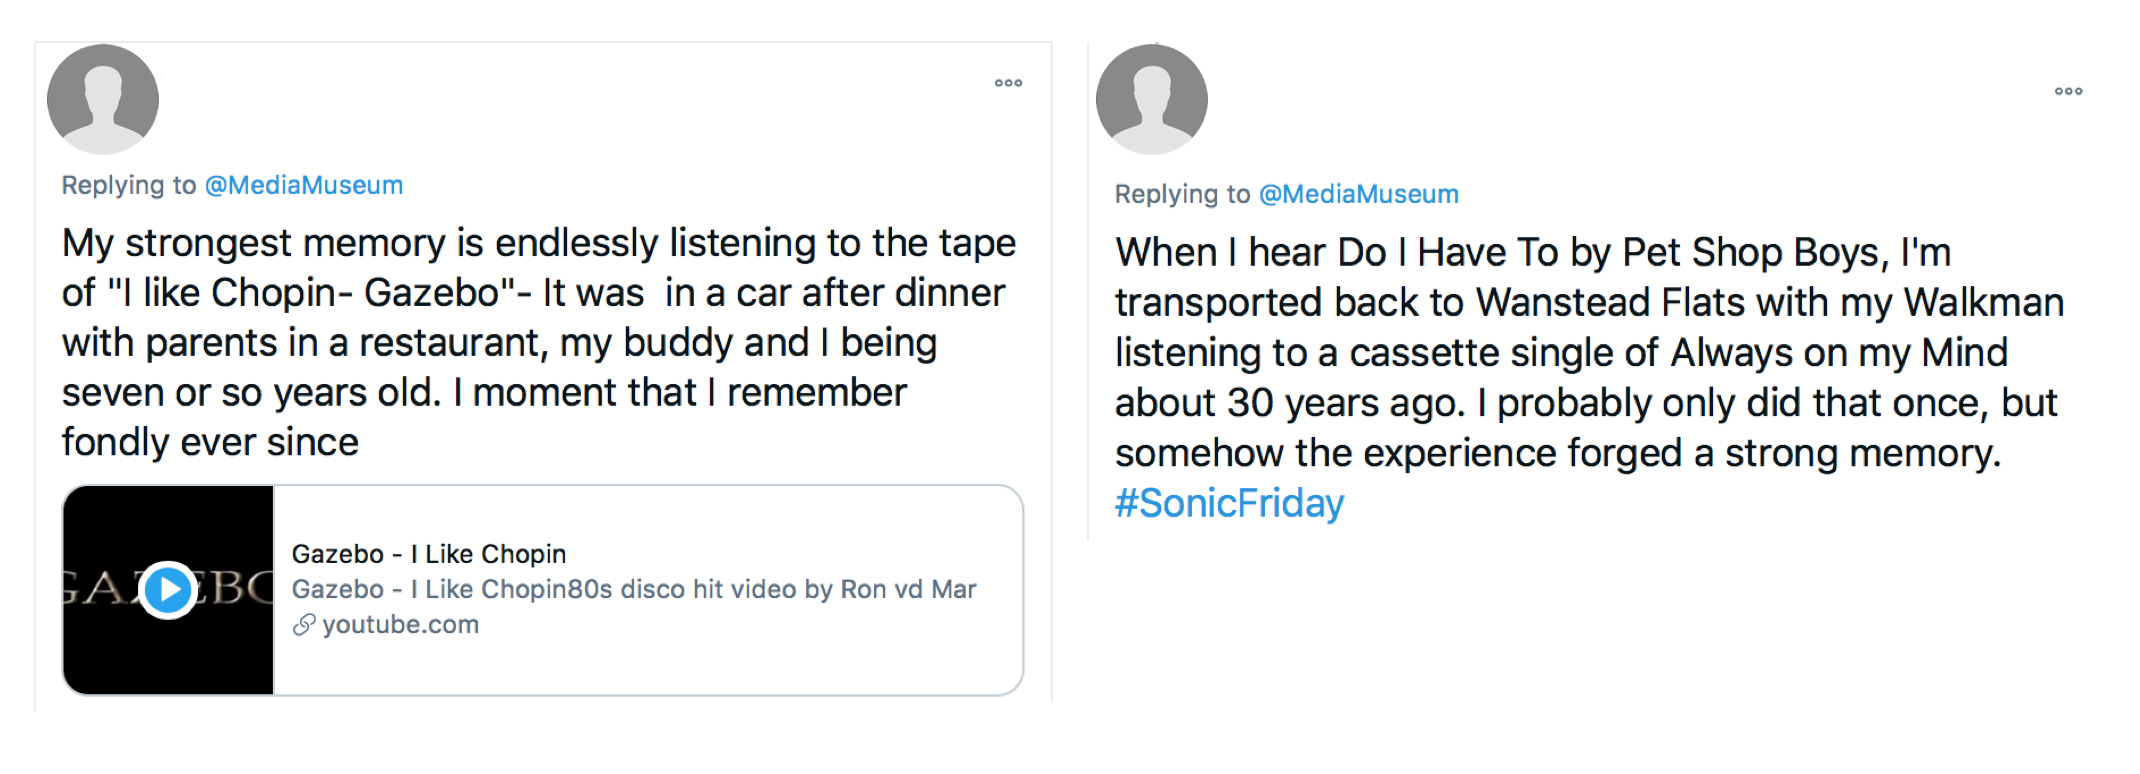 Two Twitter users sharing their musical memories on cassettes